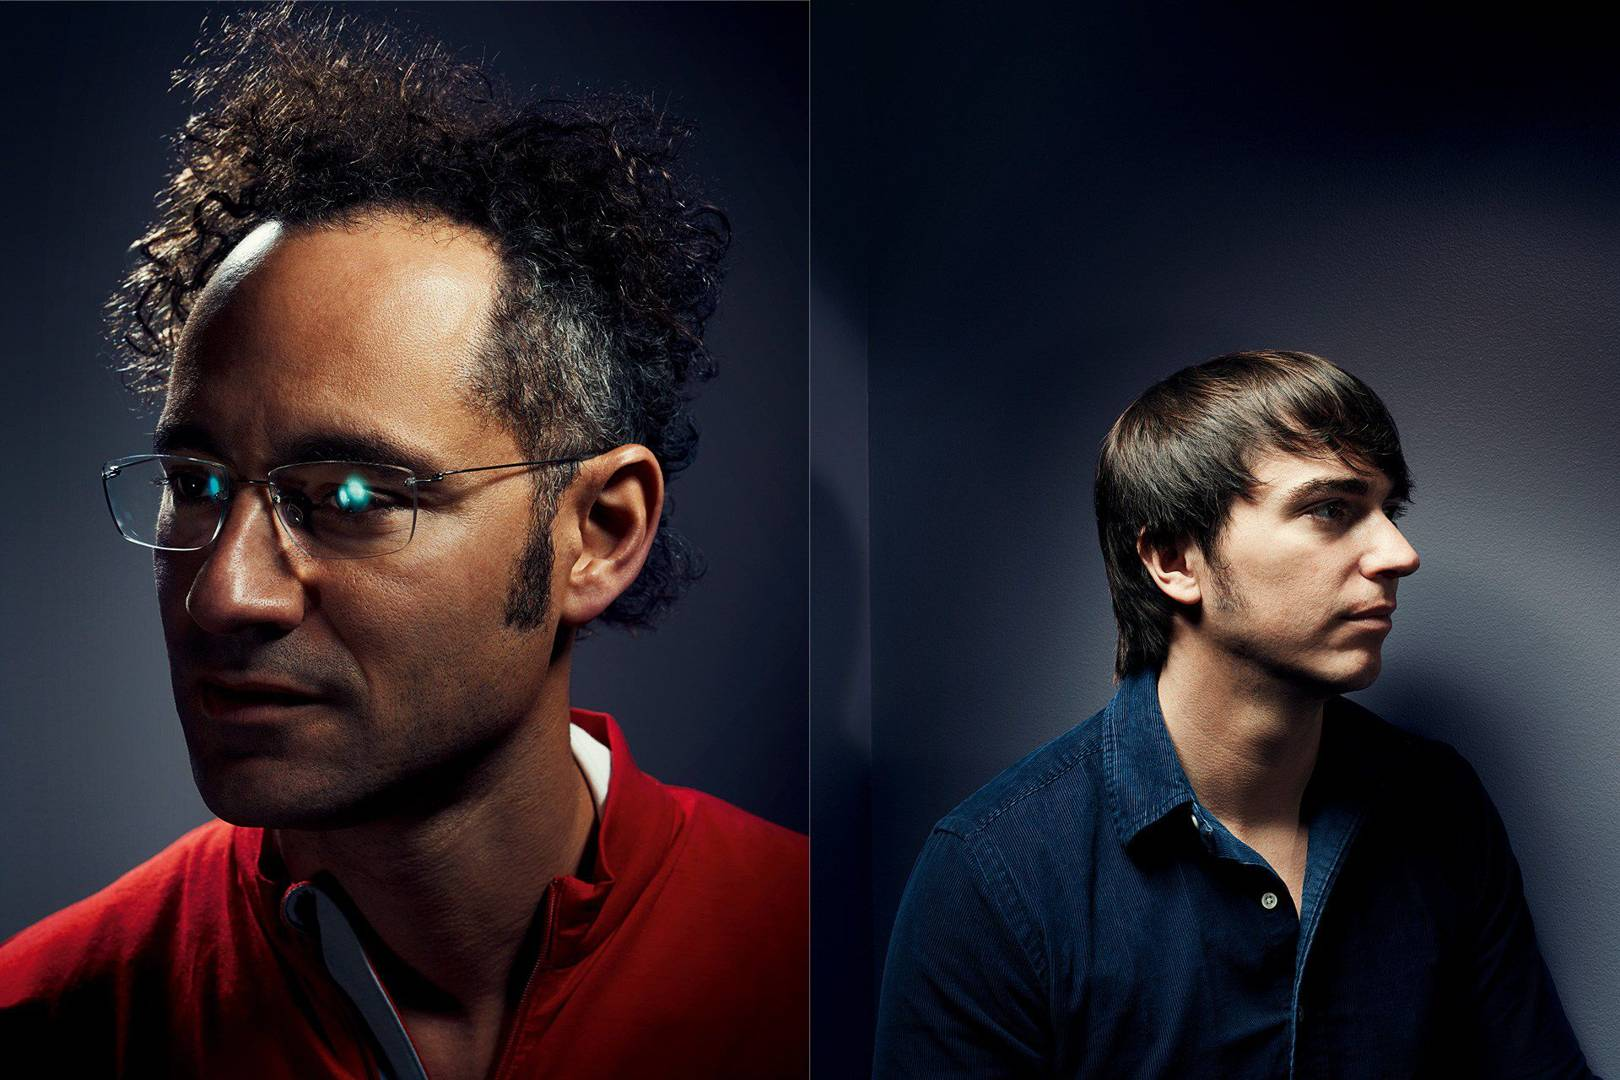 Palantir Technologies spots patterns to solve crimes and